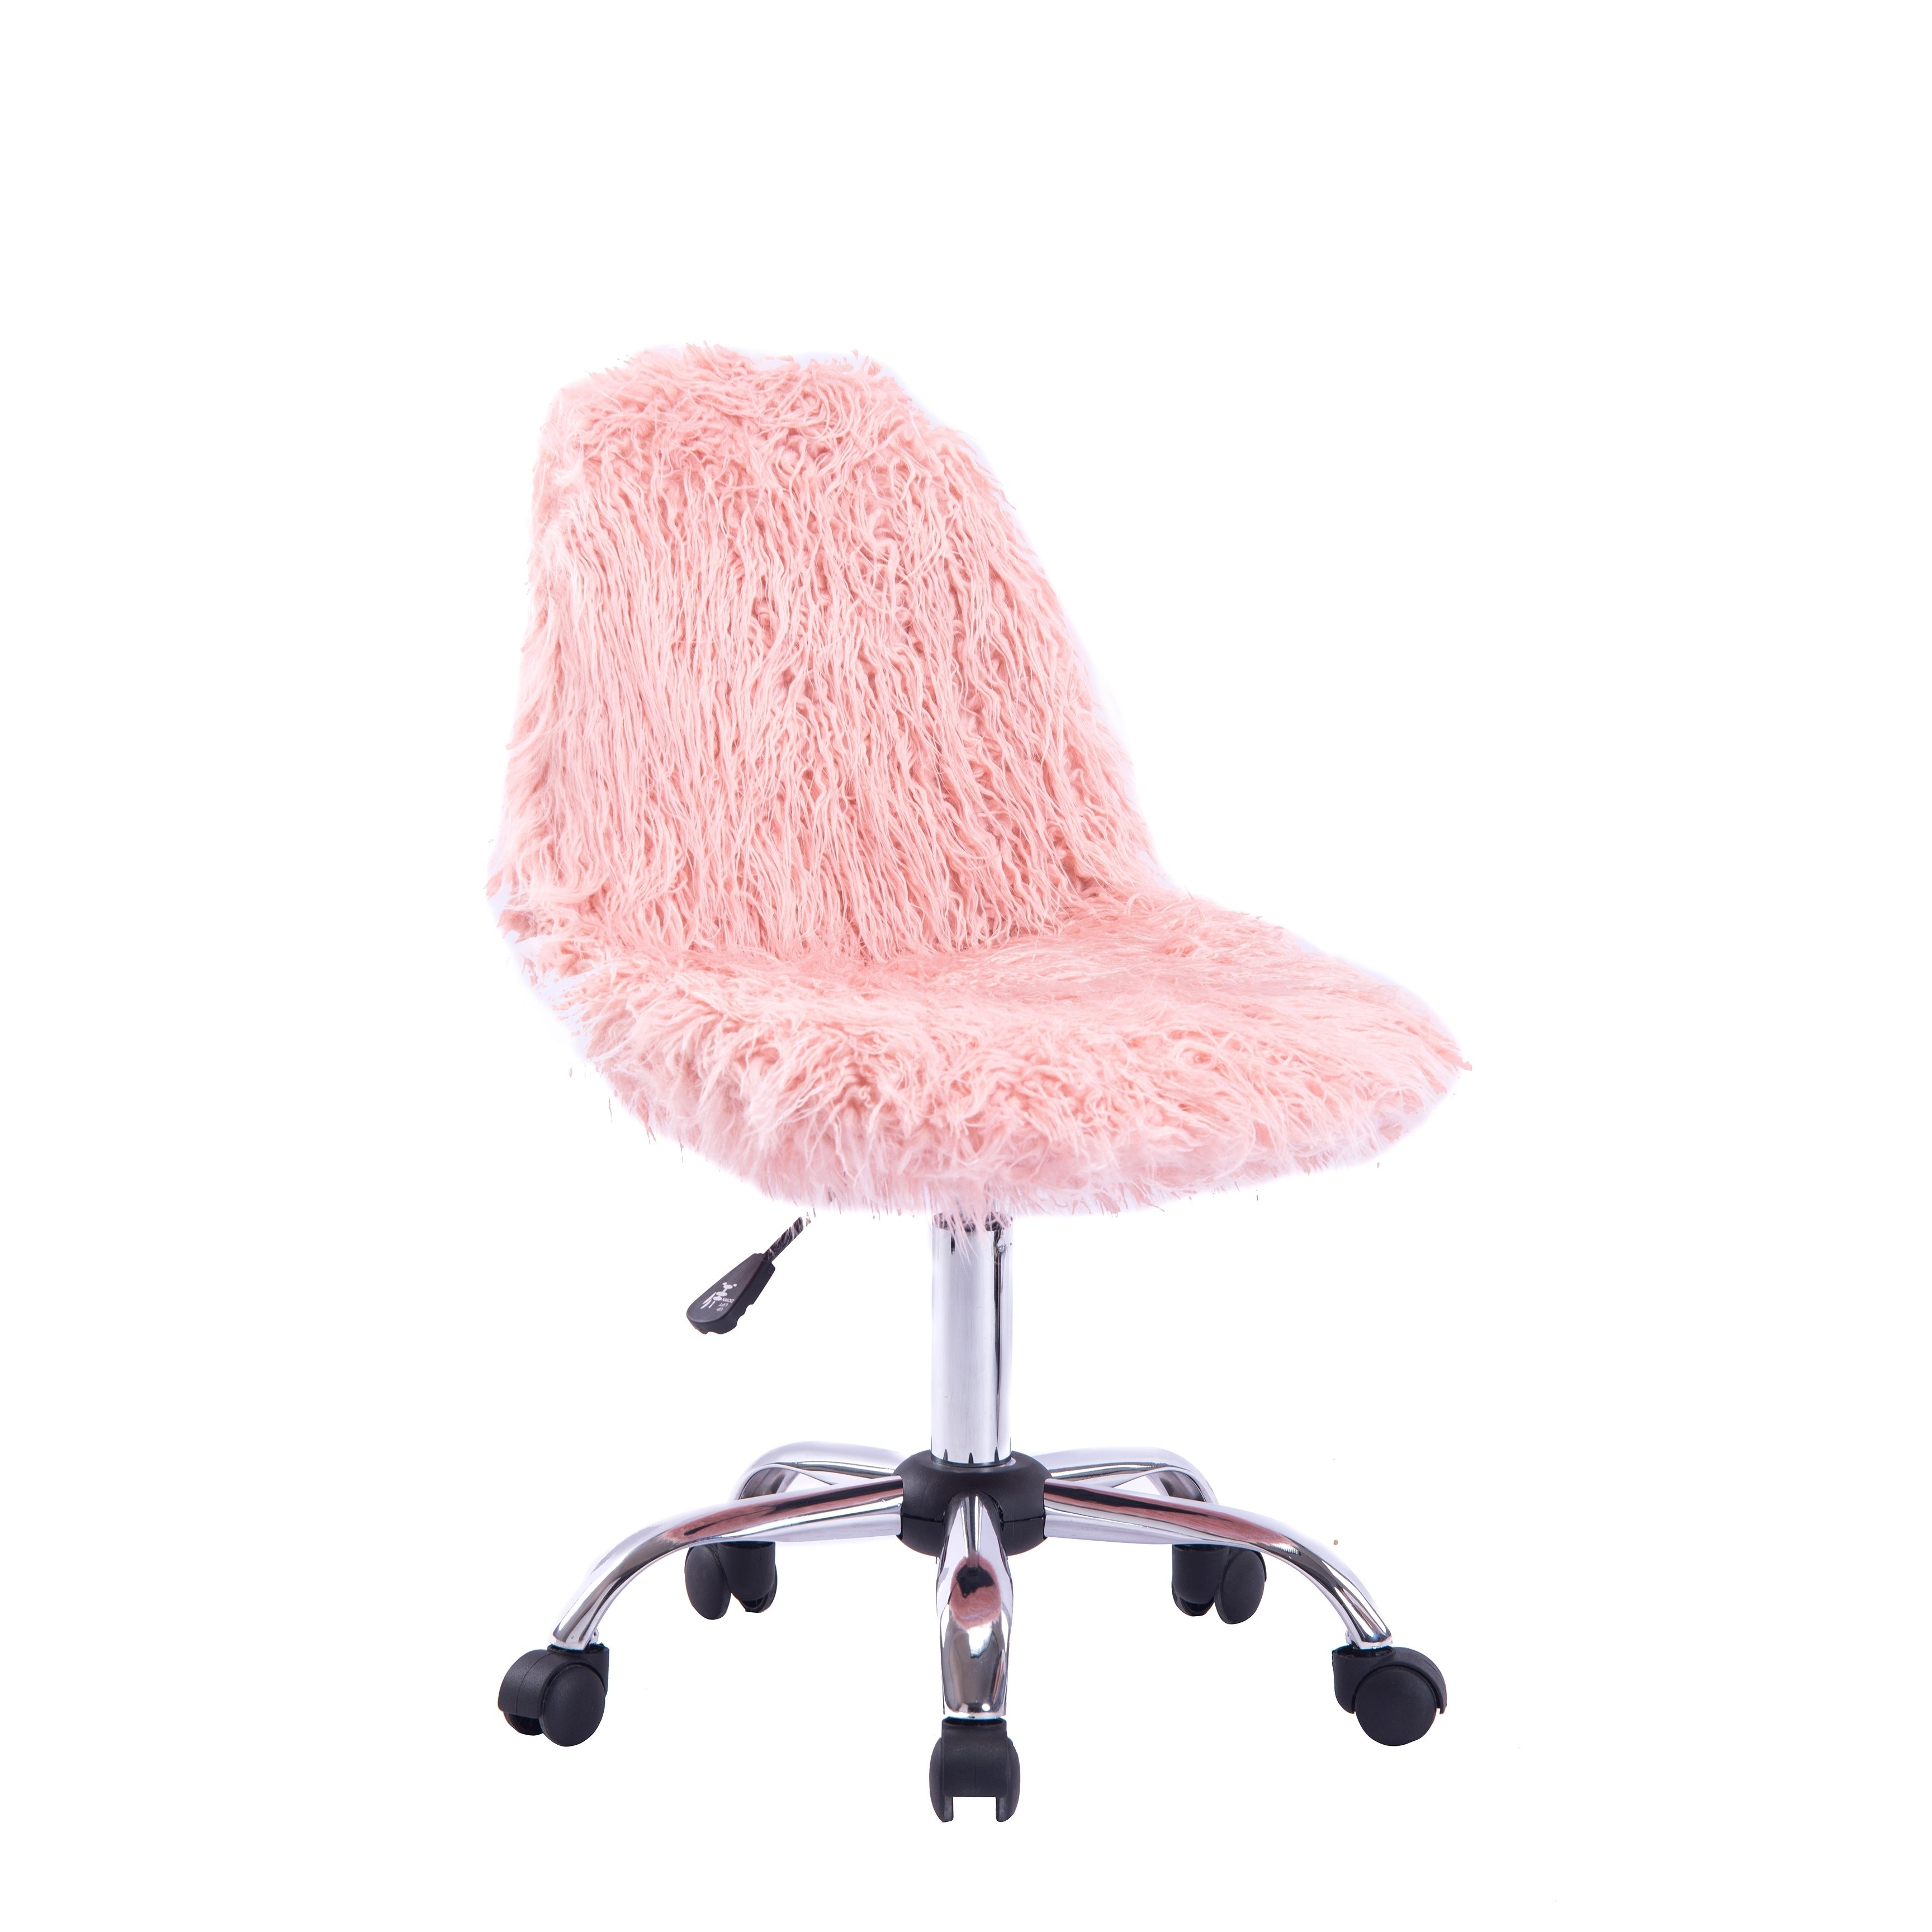 Shop Porthos Home Patia Faux Fur Chair With Adjustable Height 360 Swivel Overstock 28718207